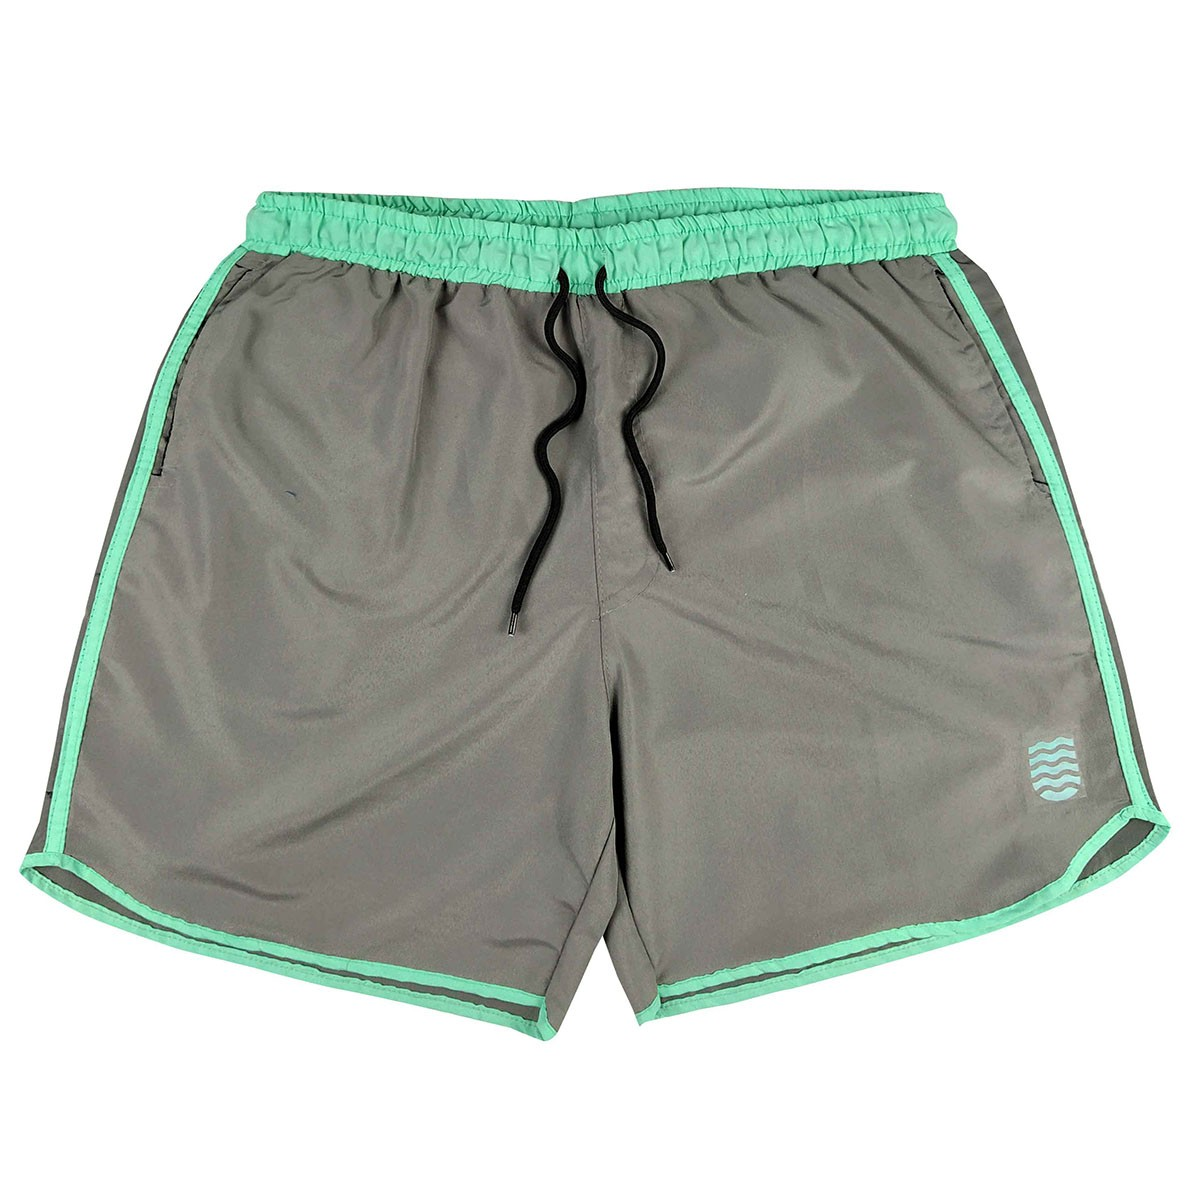 Shorts Masculino Wss Colors DarkSlateGray